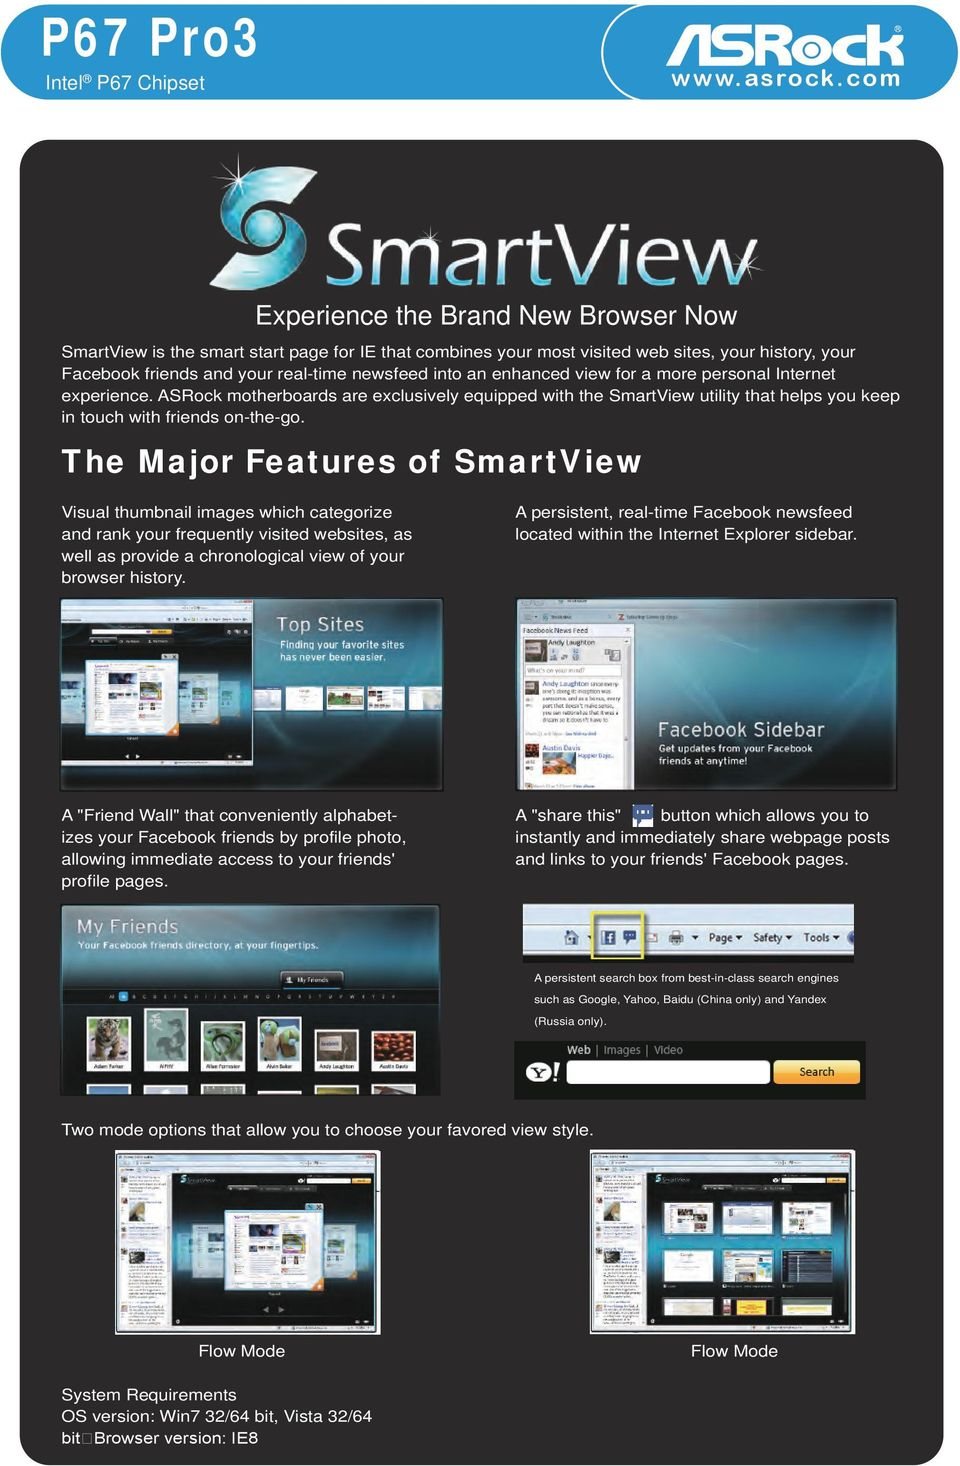 The Major Features of SmartView Visual thumbnail images which categorize and rank your frequently visited websites, as well as provide a chronological view of your browser history.